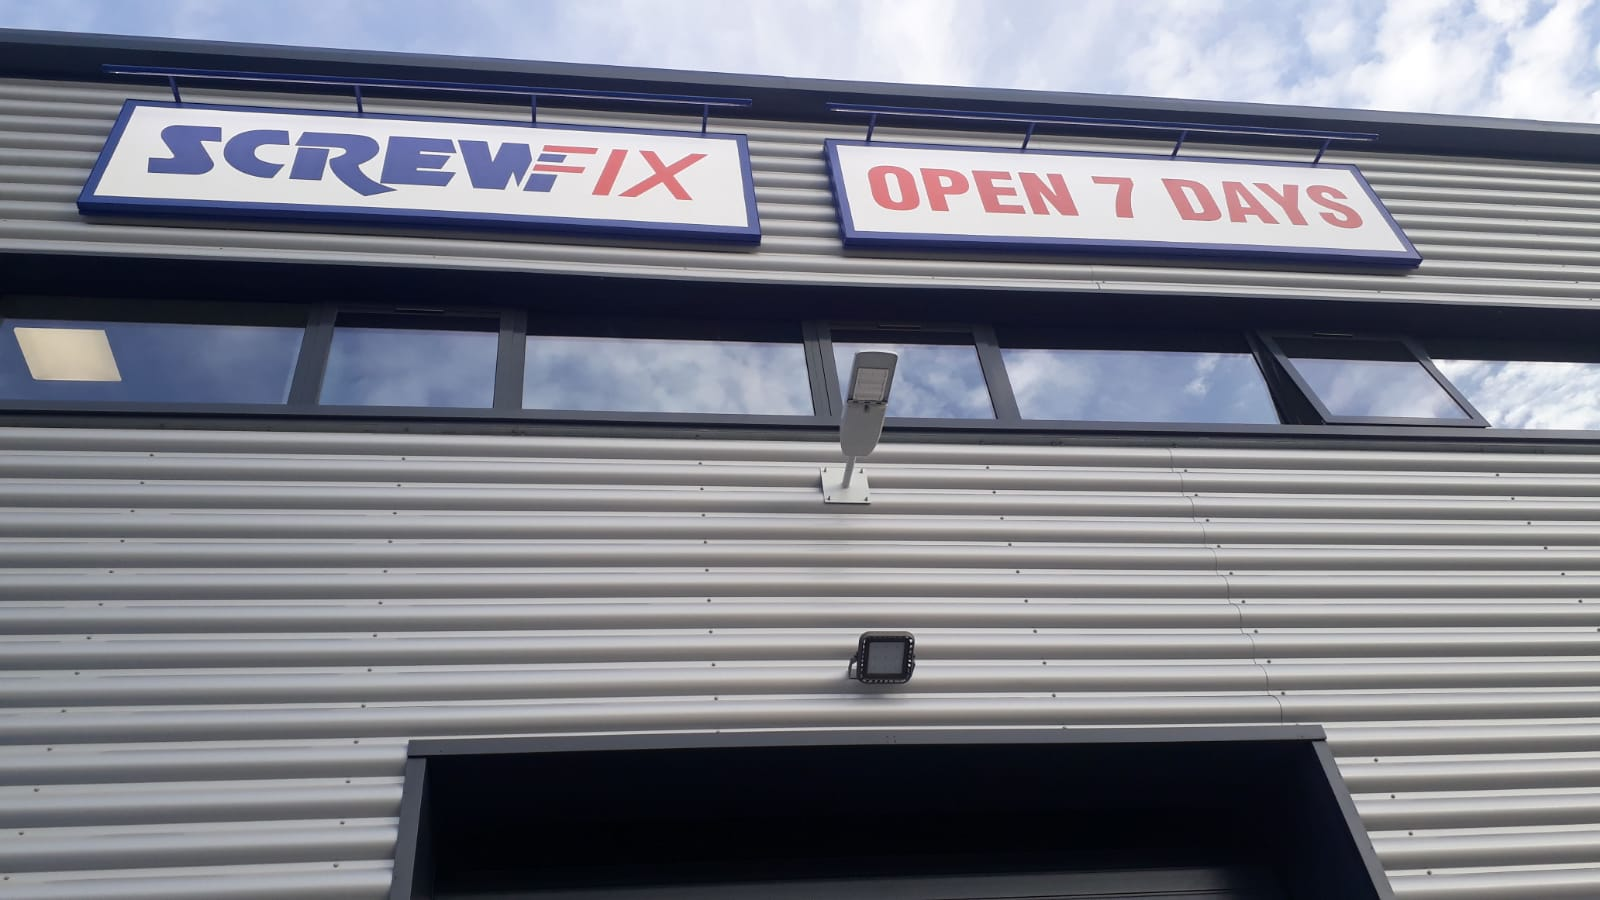 High Wycombe – Loudwater celebrates new Screwfix store opening